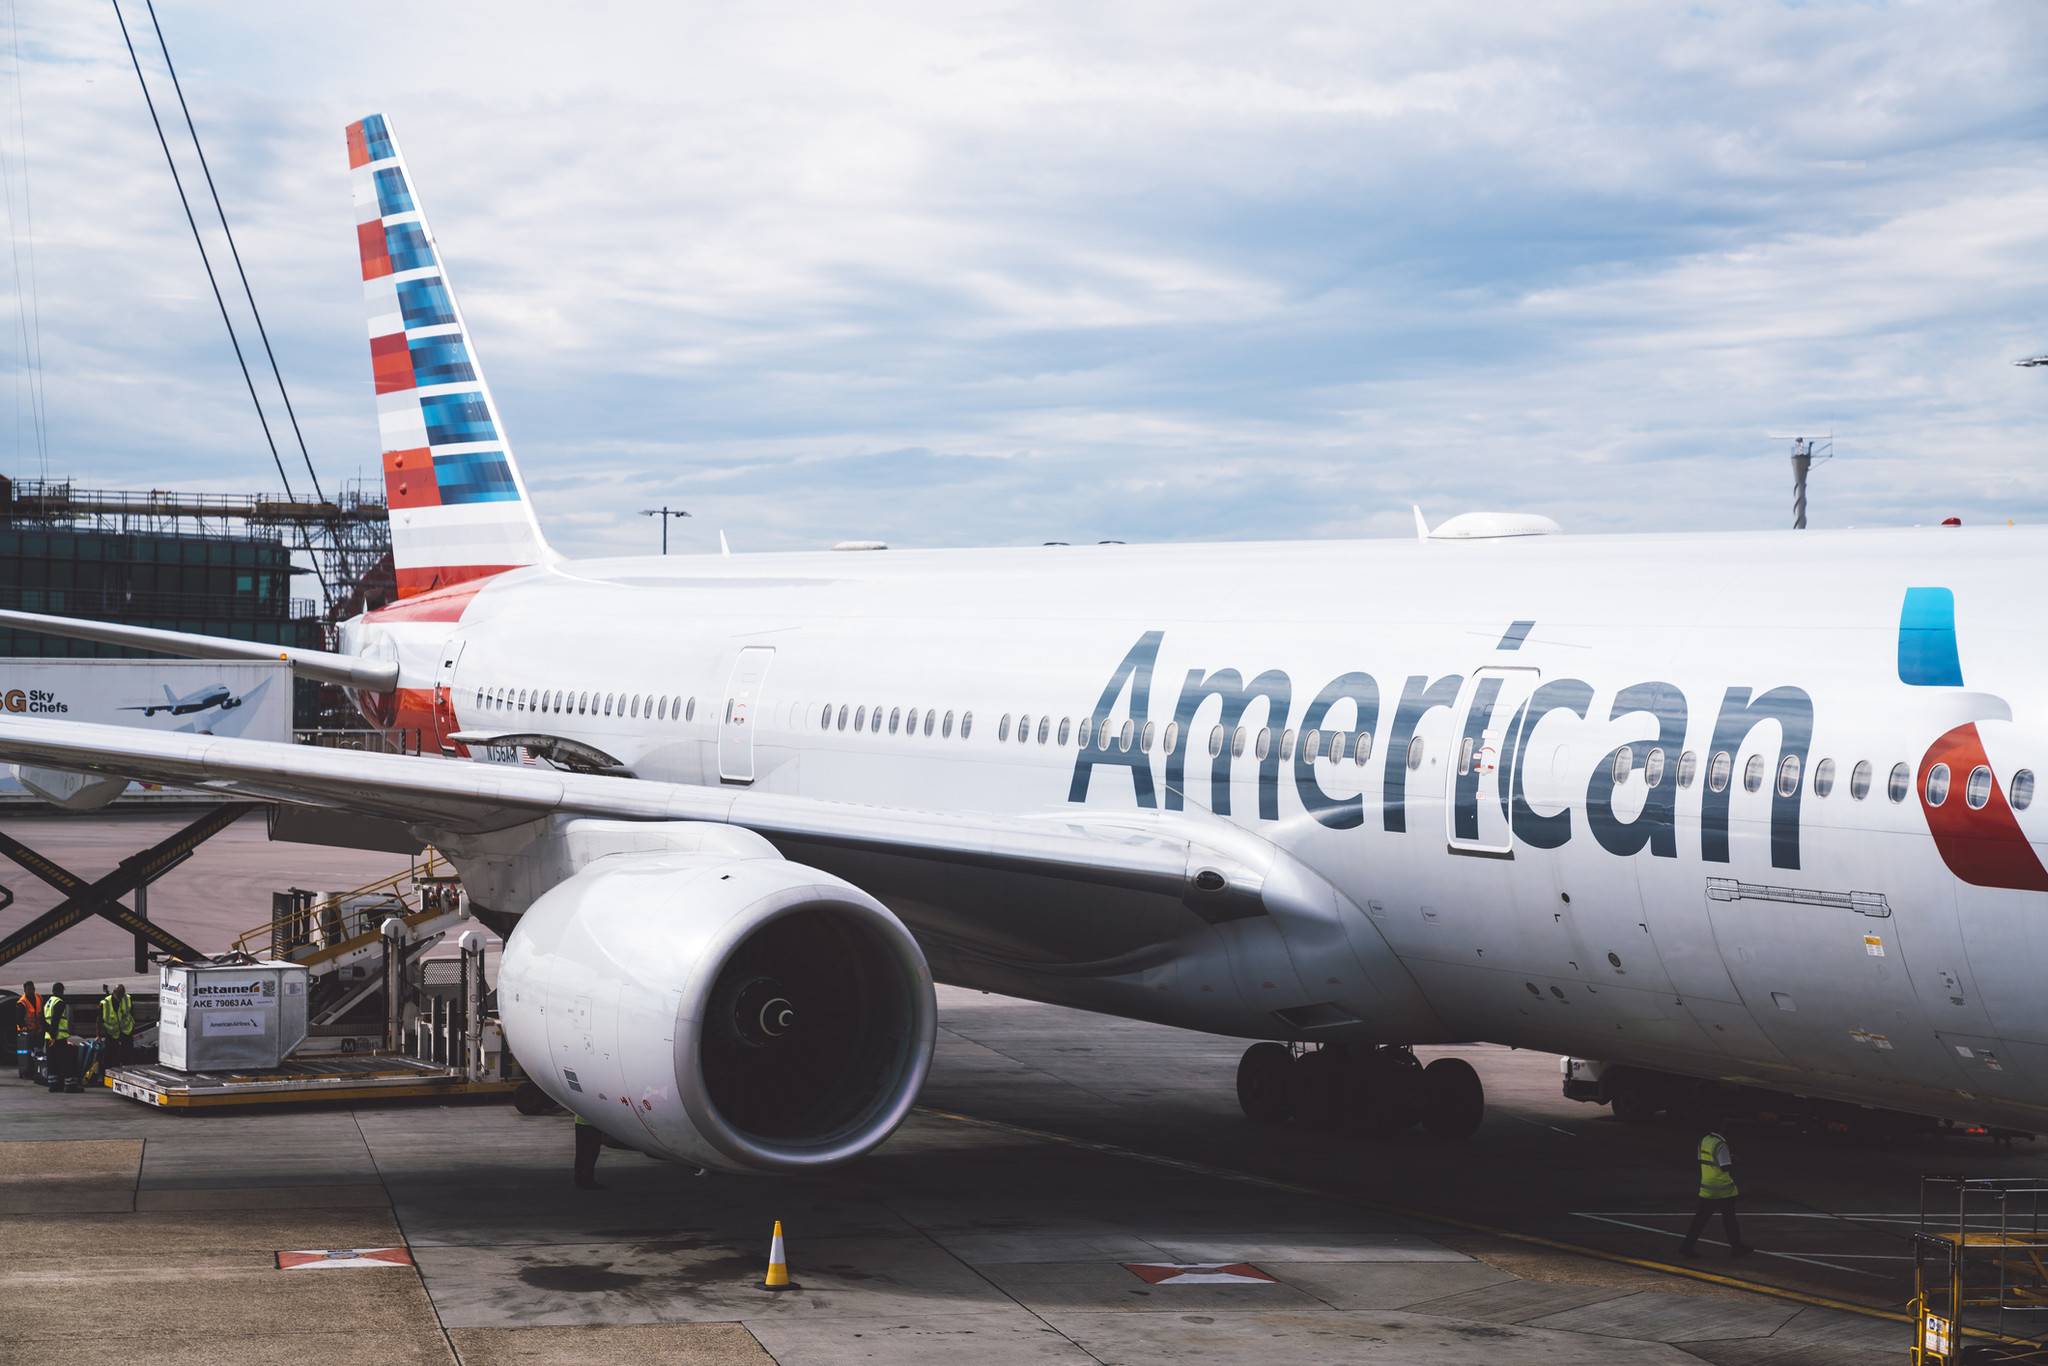 American Airlines ordered woman in 'Hail Satan' T-shirt to change or get kicked off plane: report